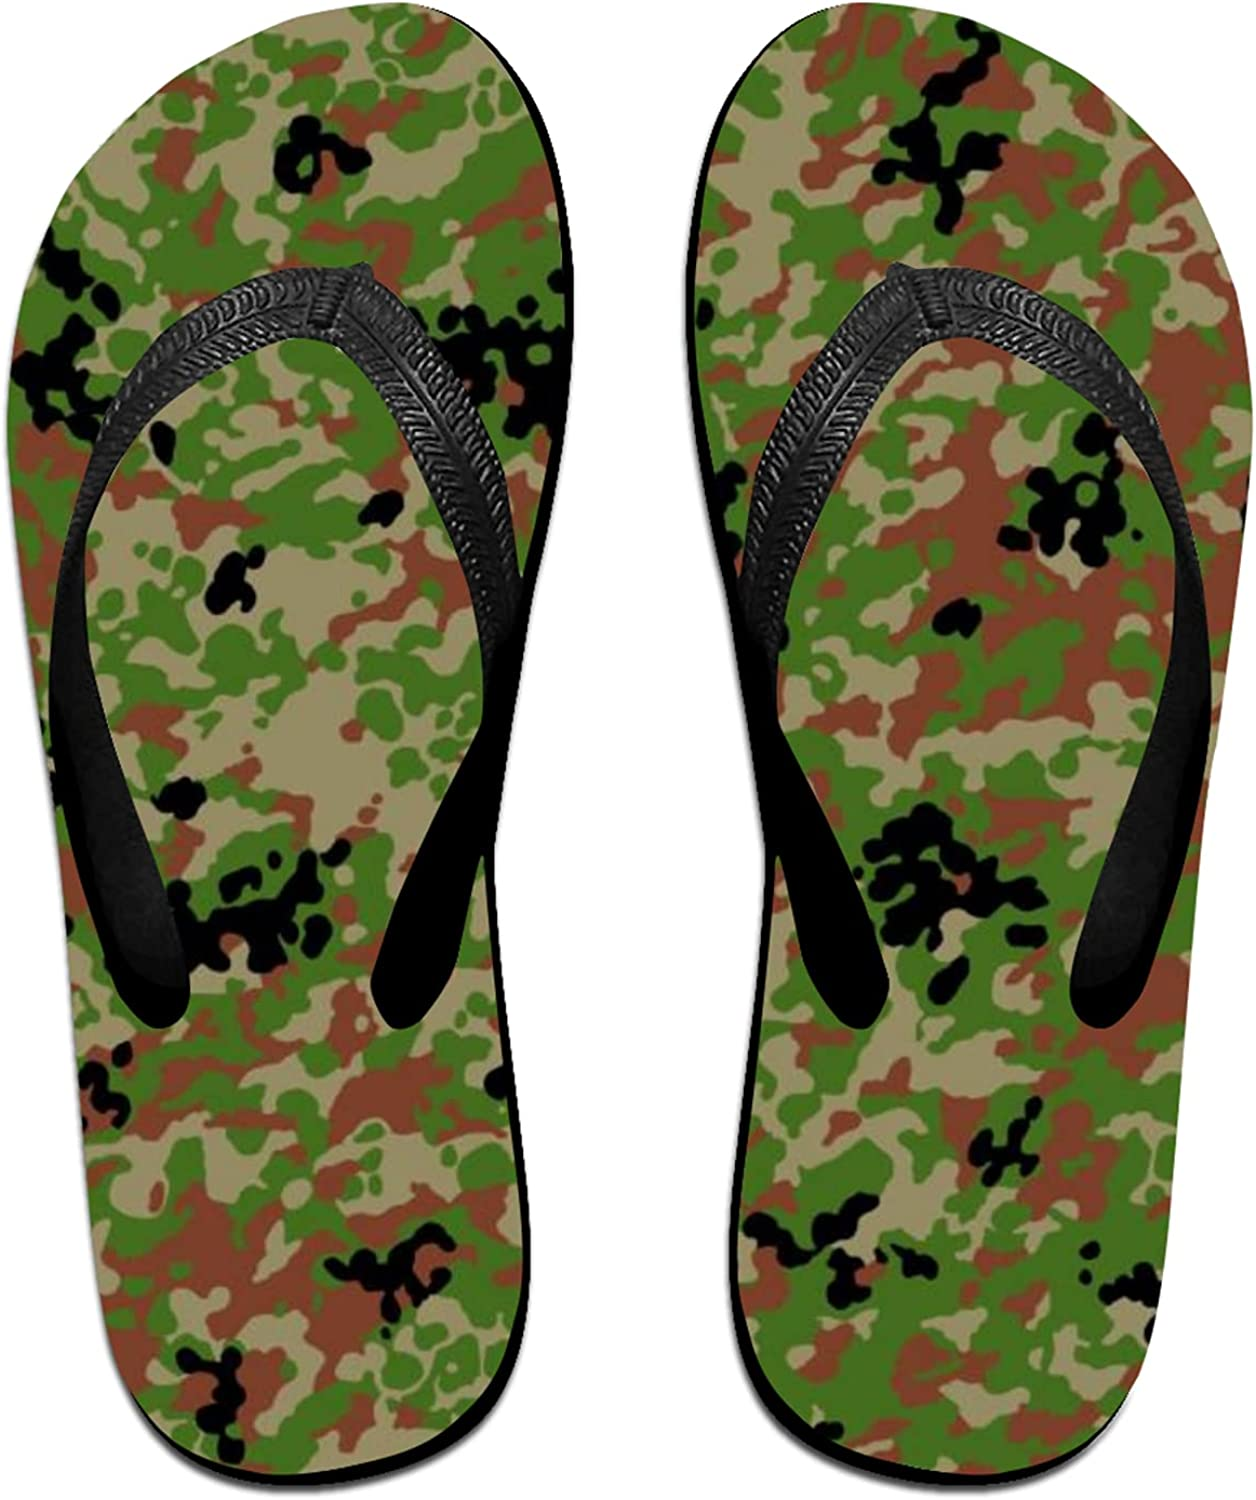 Classic Camo Camouflage Flip-Flop Sandals for Summer Beach, Slippers for Men Women